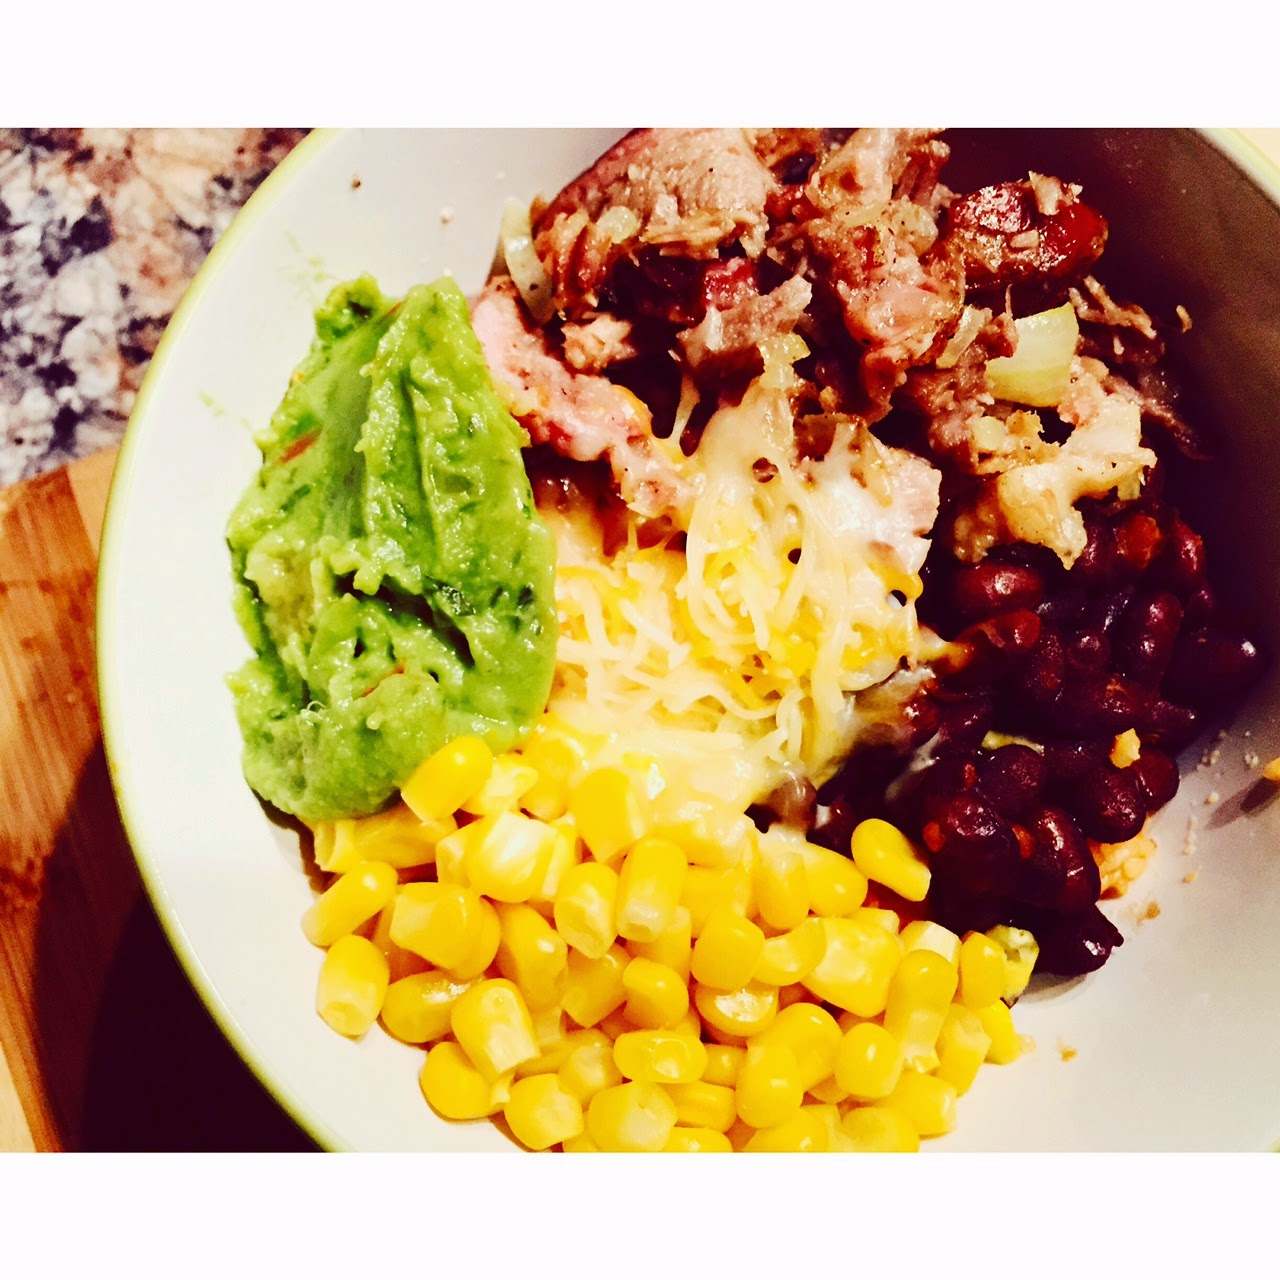 Fiesta Bowl with Mexican Rice